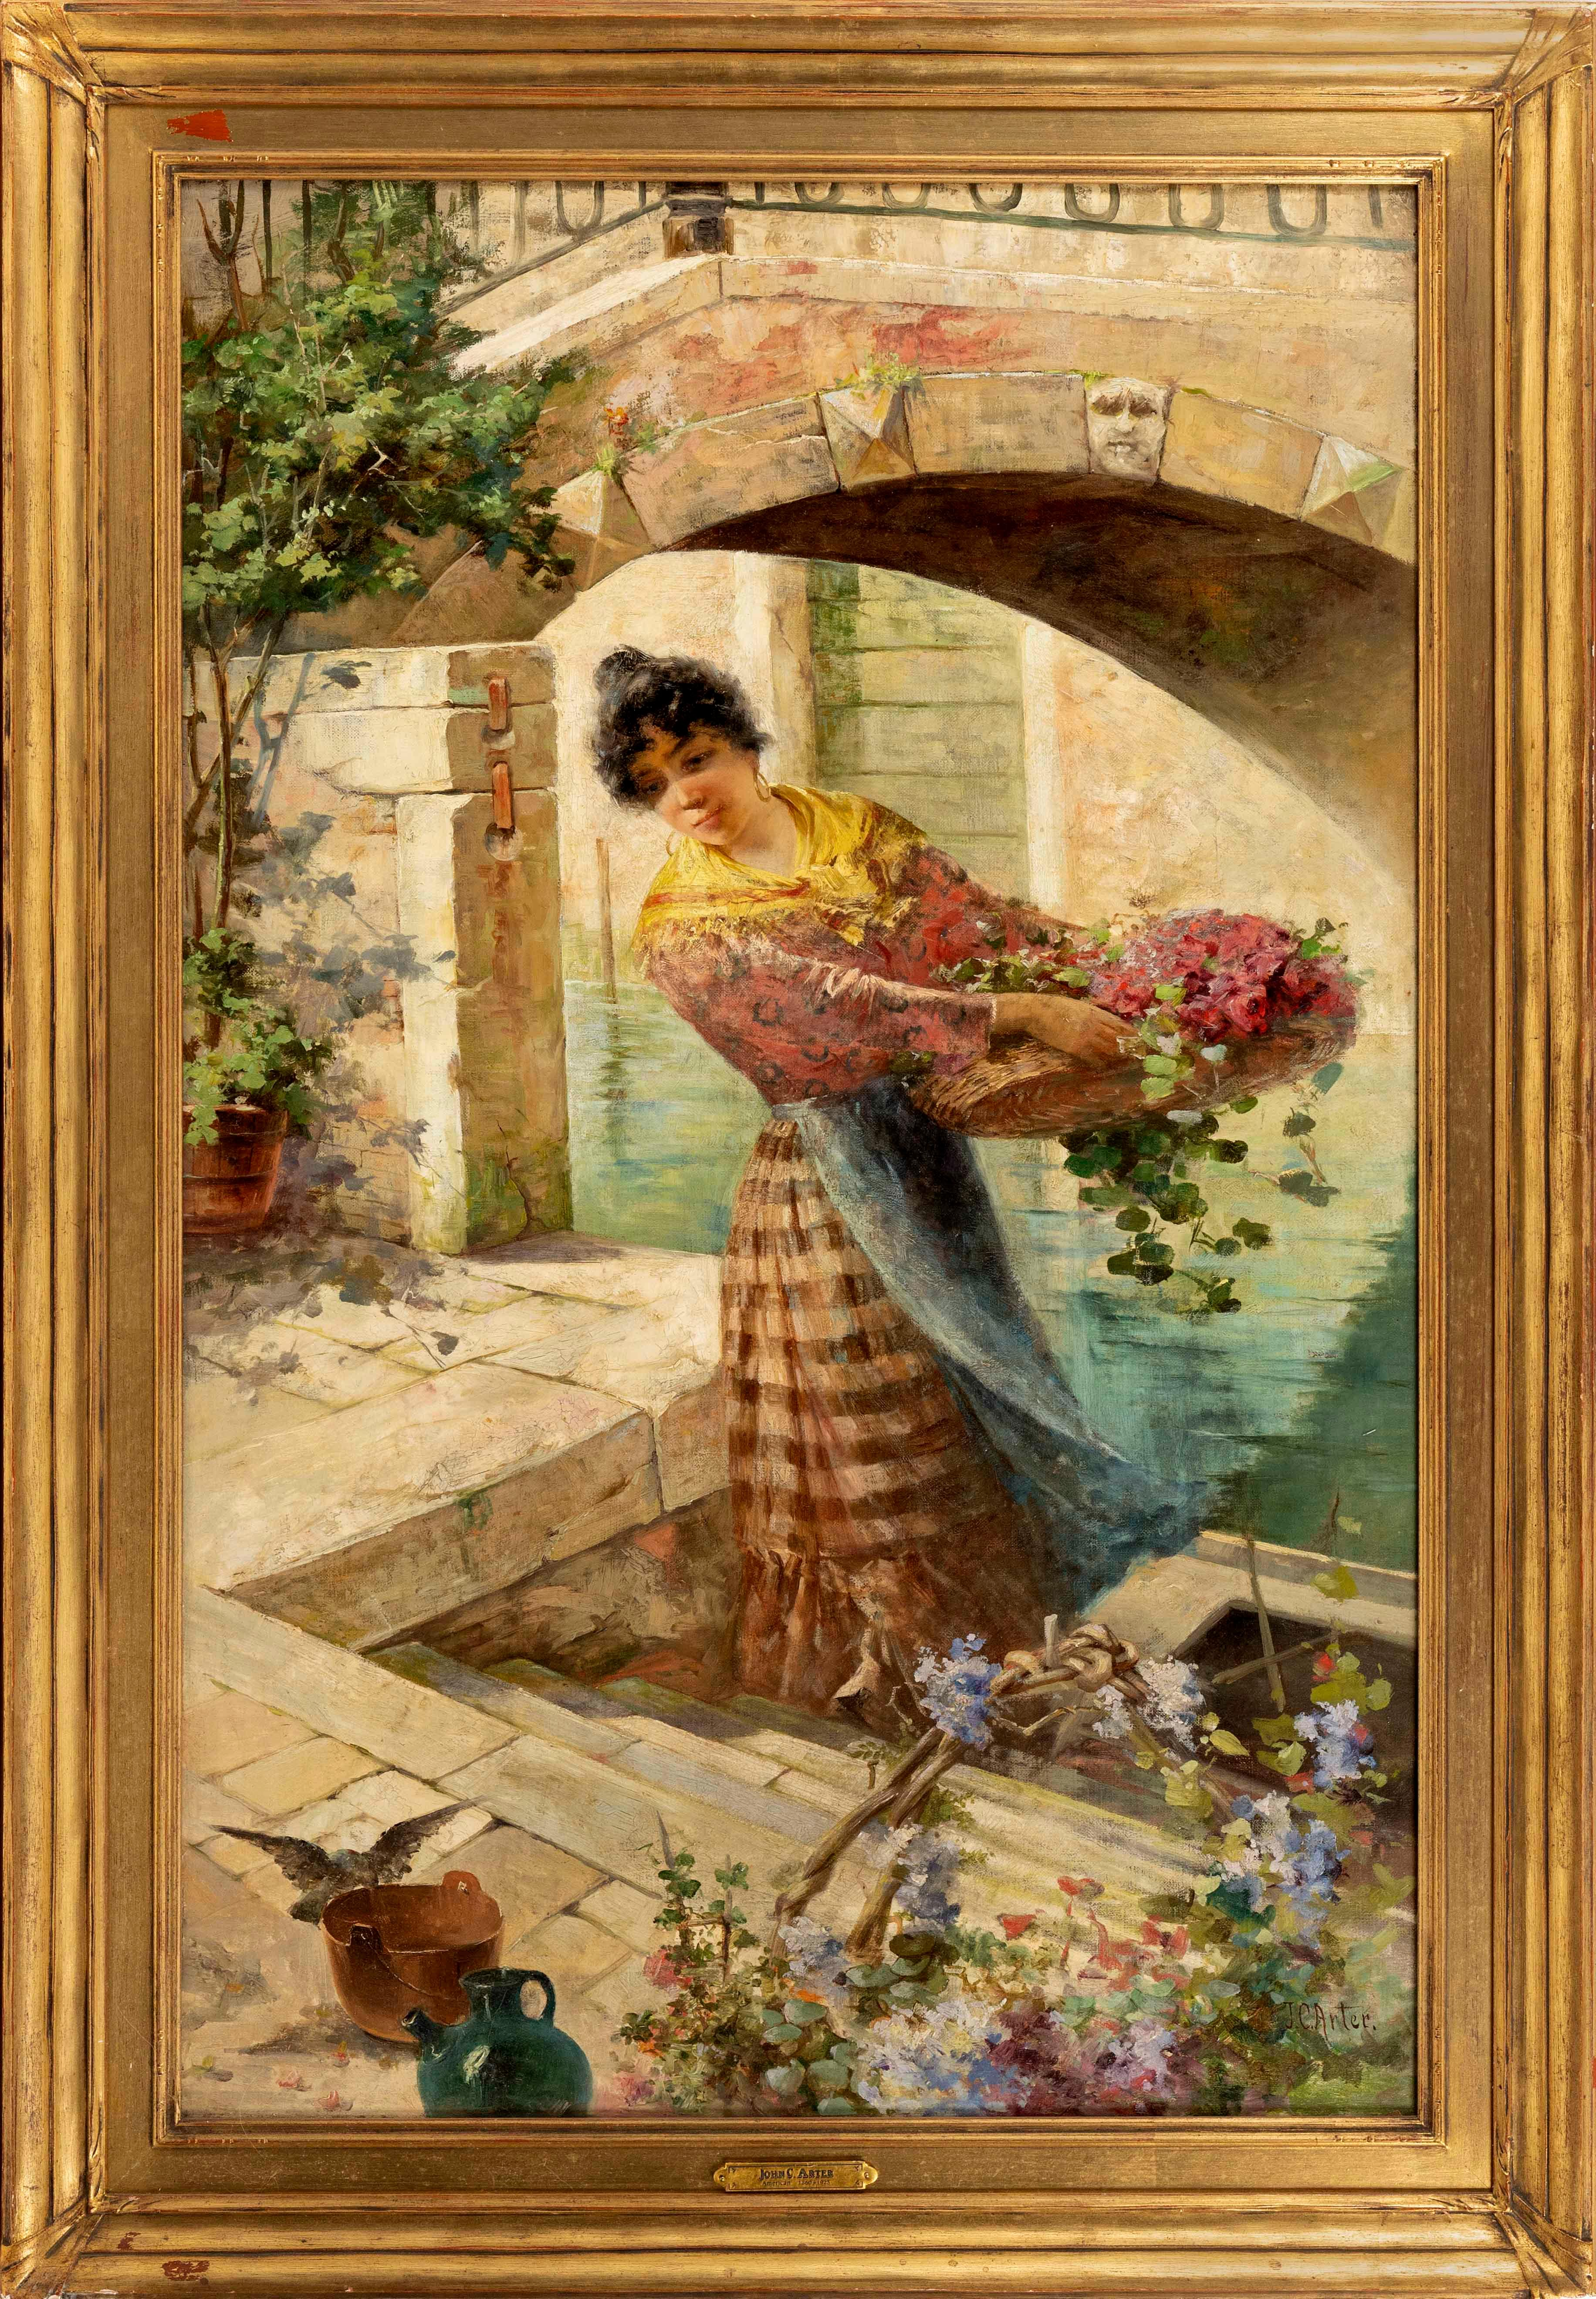 """J. CHARLES ARTER, New York/Ohio, 1860-1923, A young woman carrying a flower basket along a canal, likely Venice., Oil on canvas, 36""""..."""